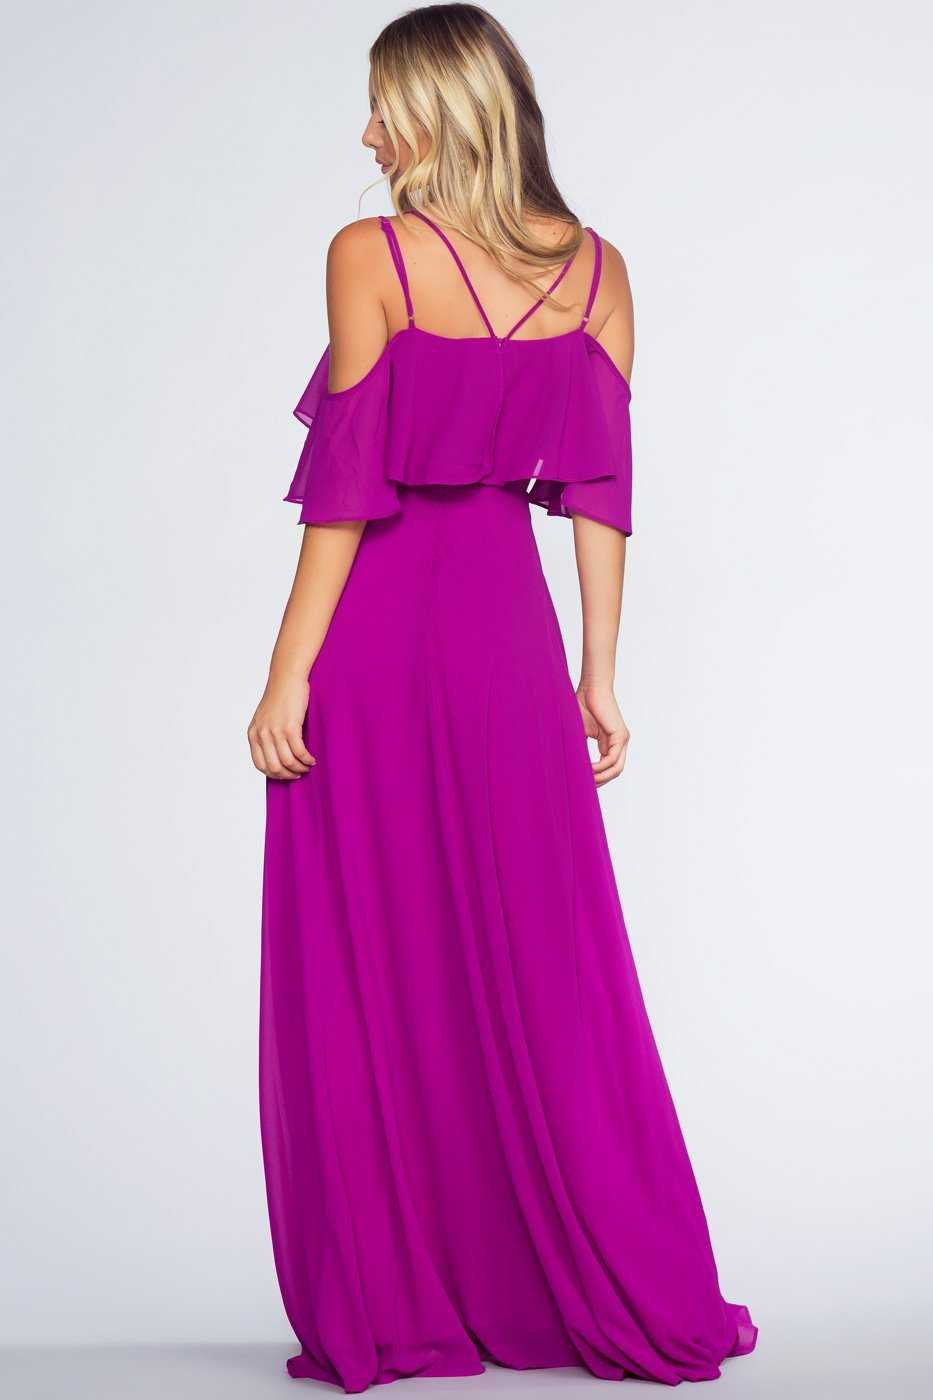 Dresses - Mythical Romance Maxi Dress - Purple